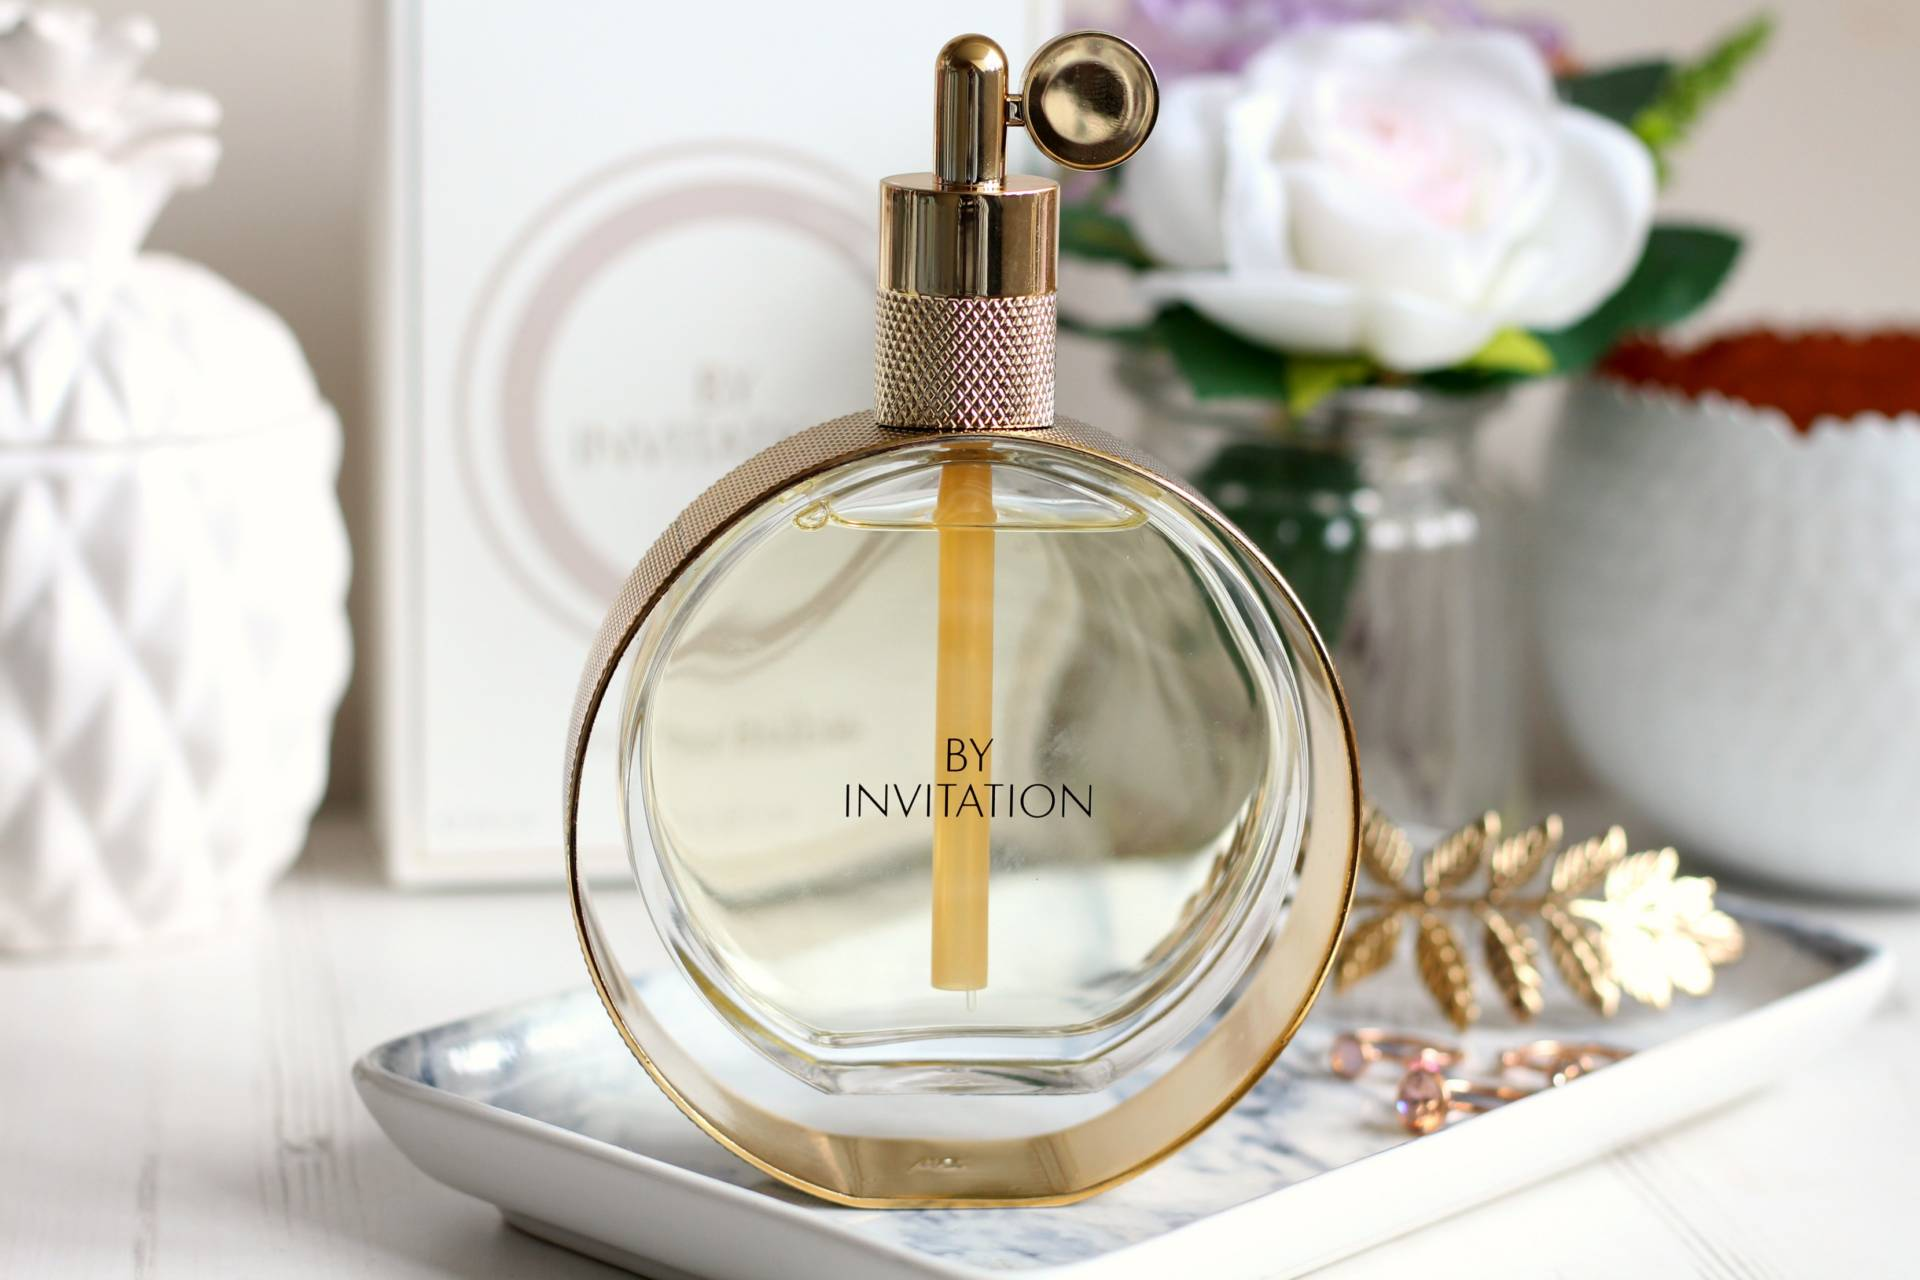 The perfect Autumn fragrance – By Invitation Michael Buble